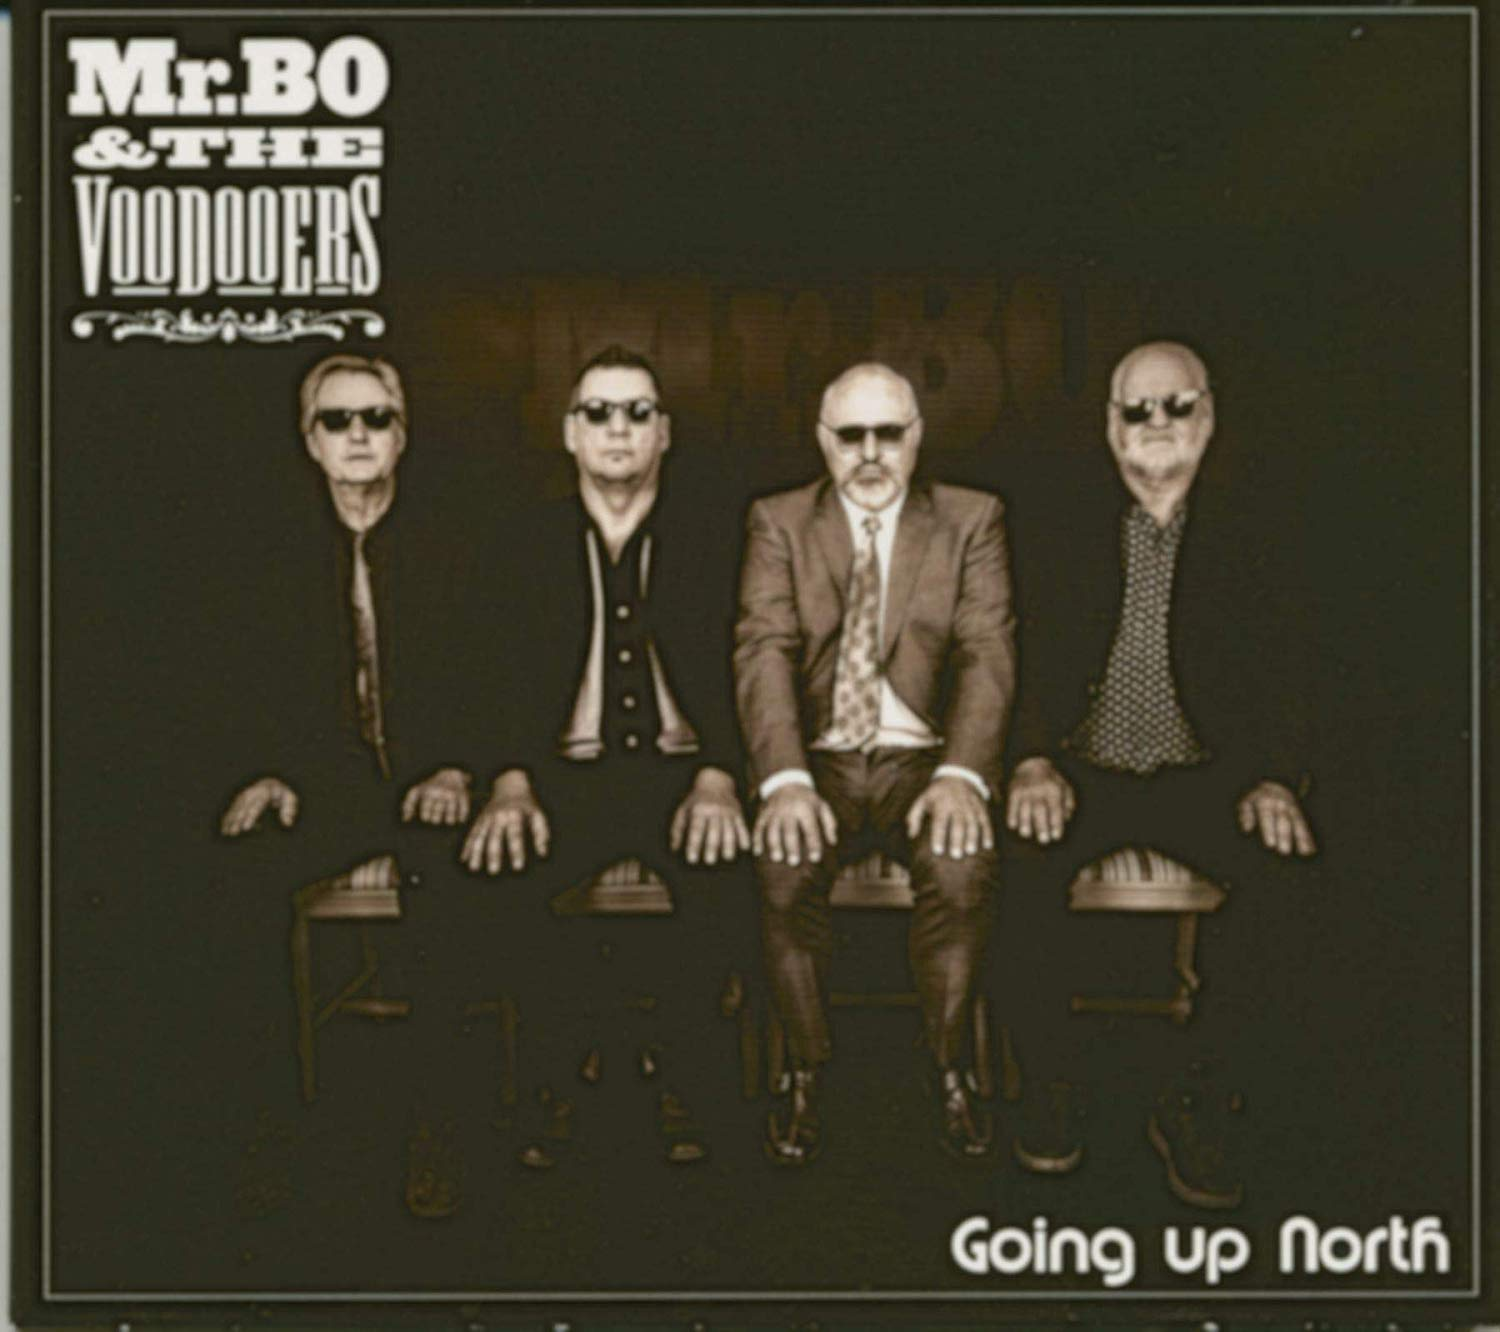 MR. BO & THE VOODOOERS - Going Up North